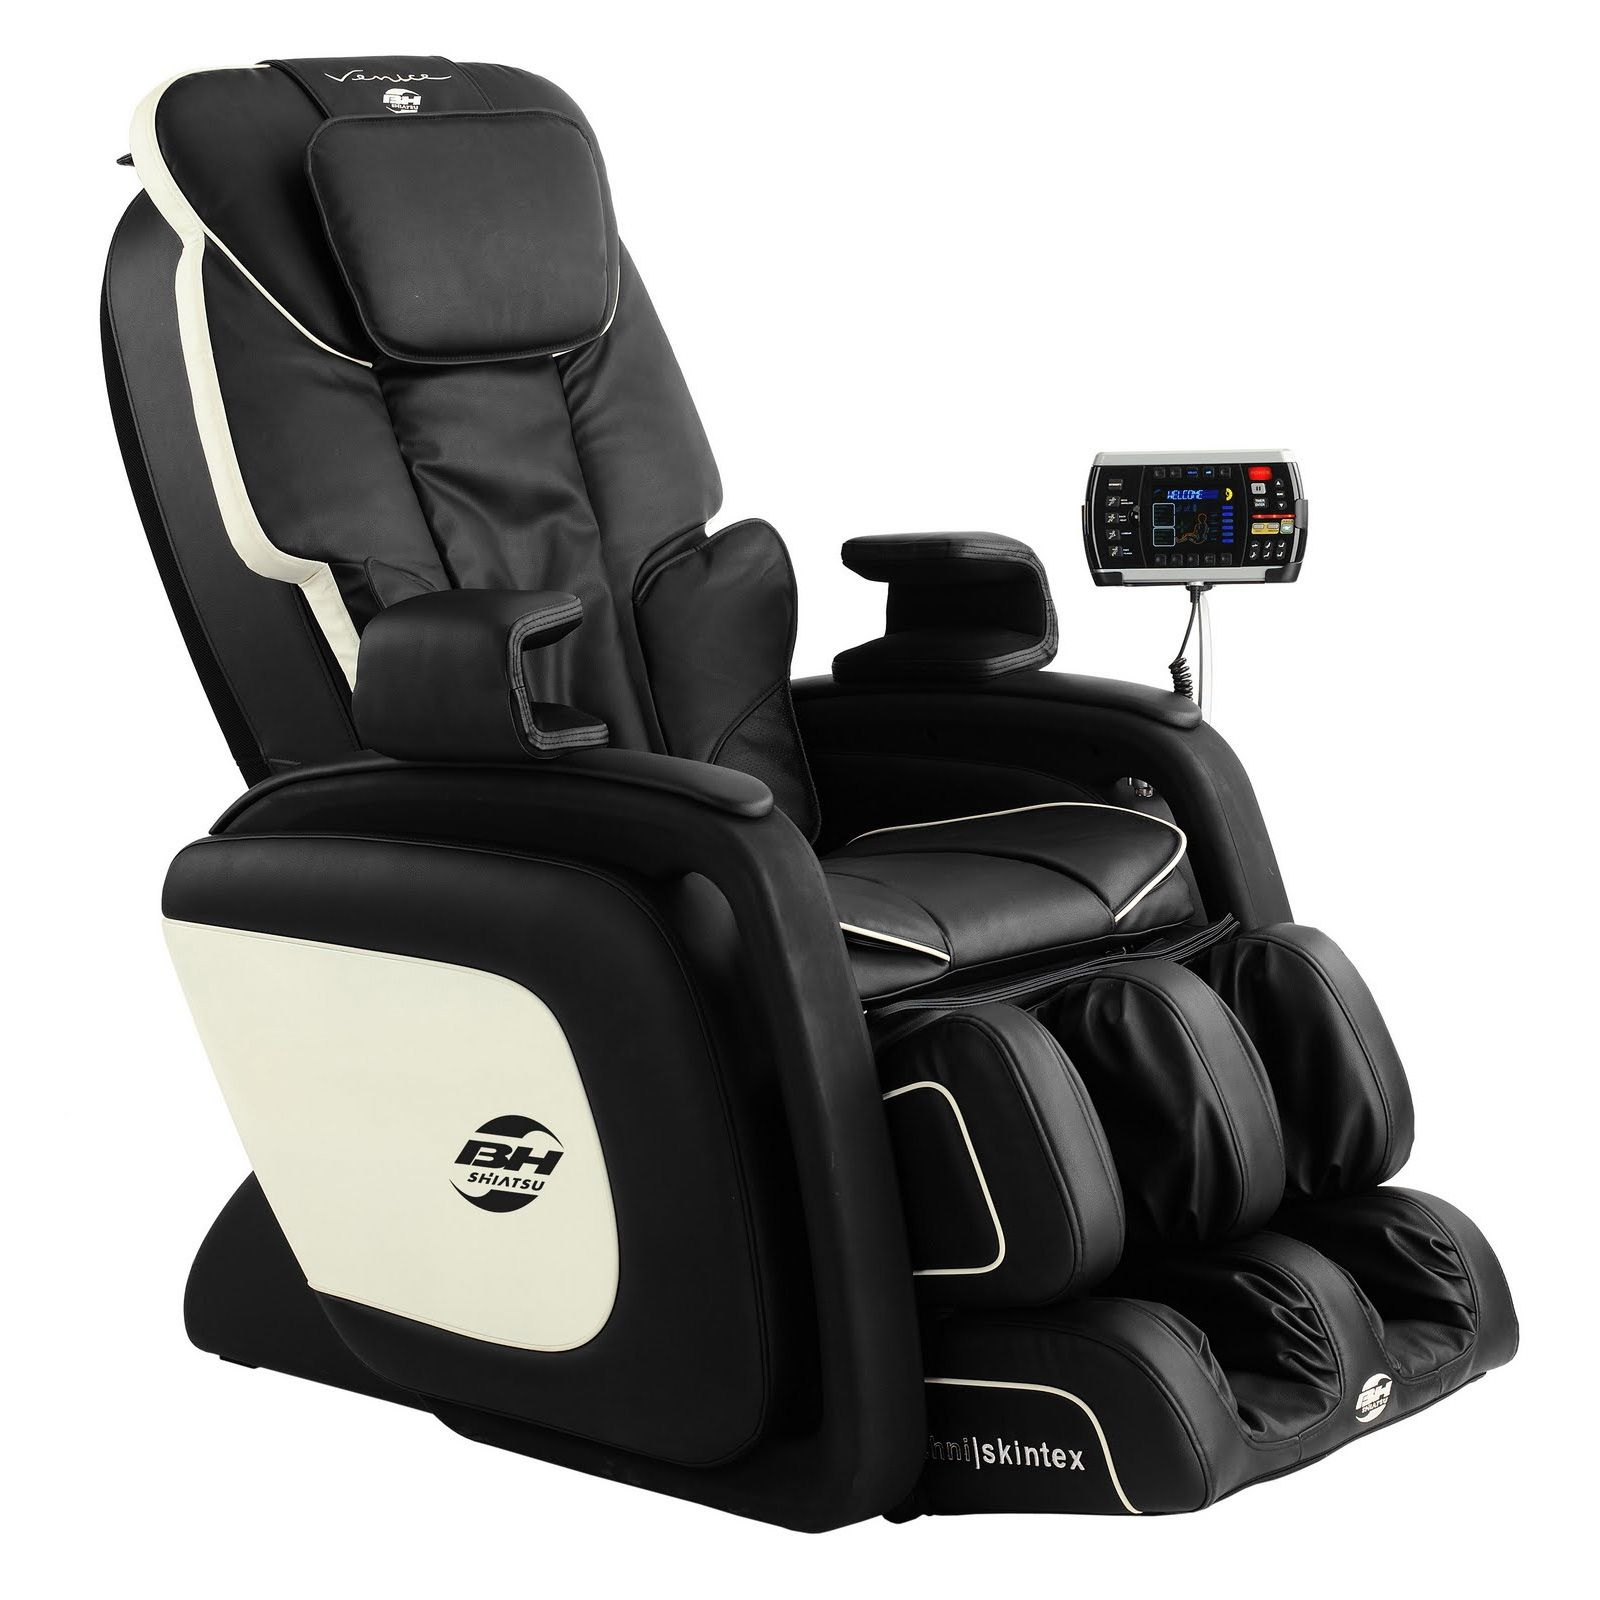 Message Chairs Bh Shiatsu M650 Venice Massage Chair Sweatband